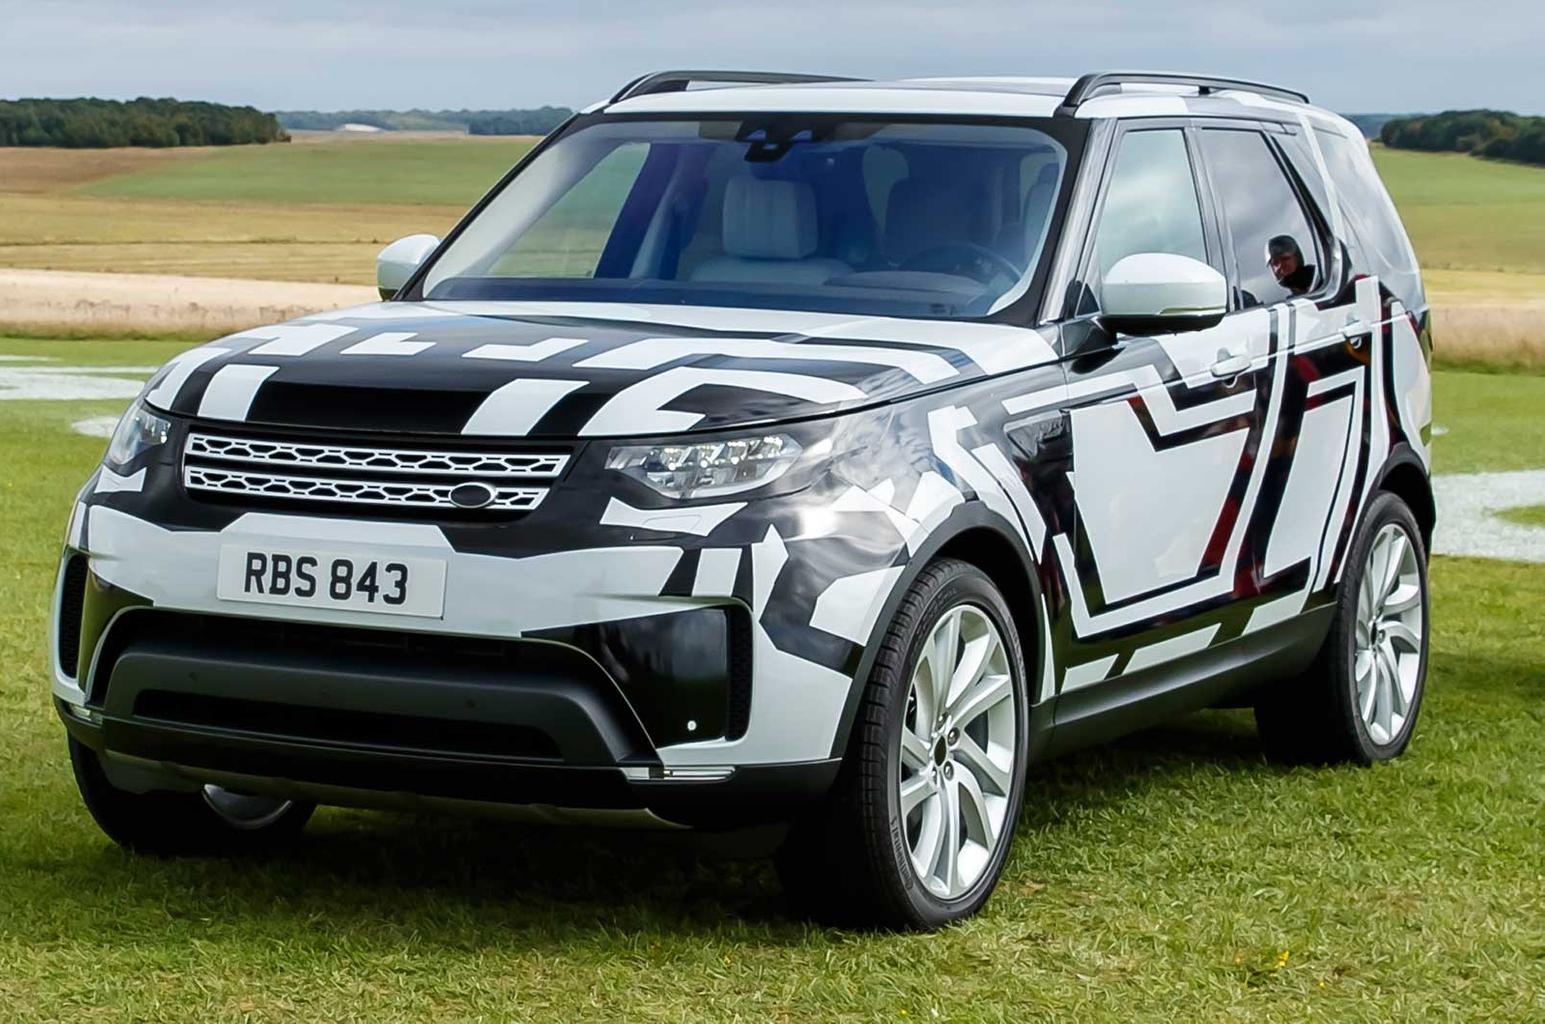 2017 Land Rover Discovery - everything you need to know